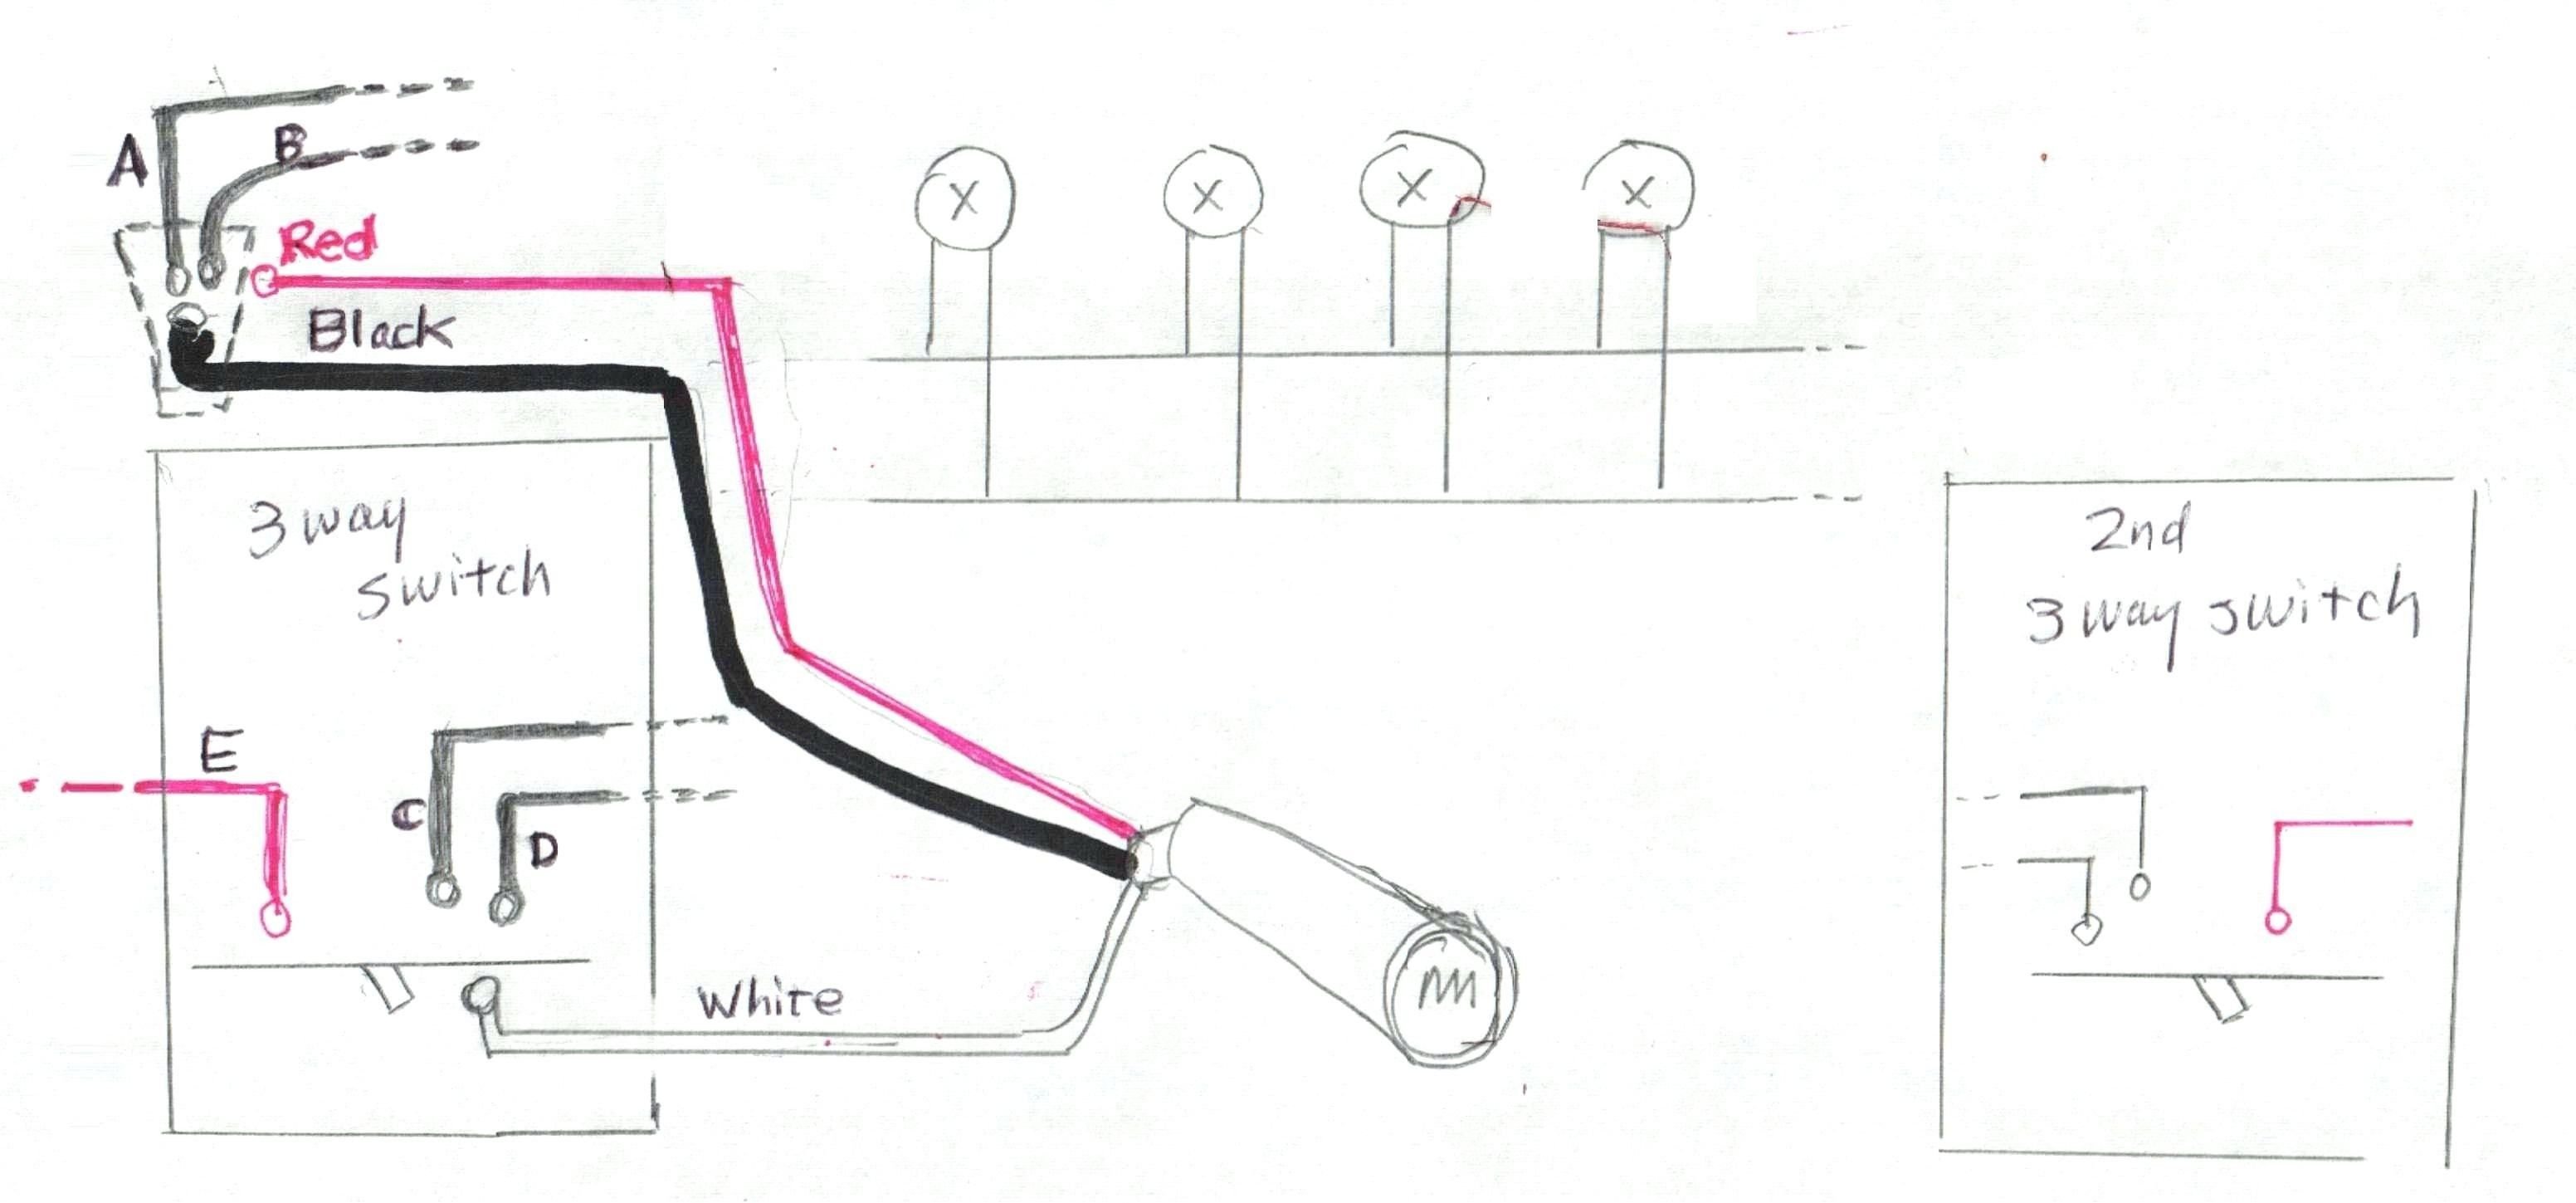 Wiring Diagram for Hogtunes Amp (con imágenes)